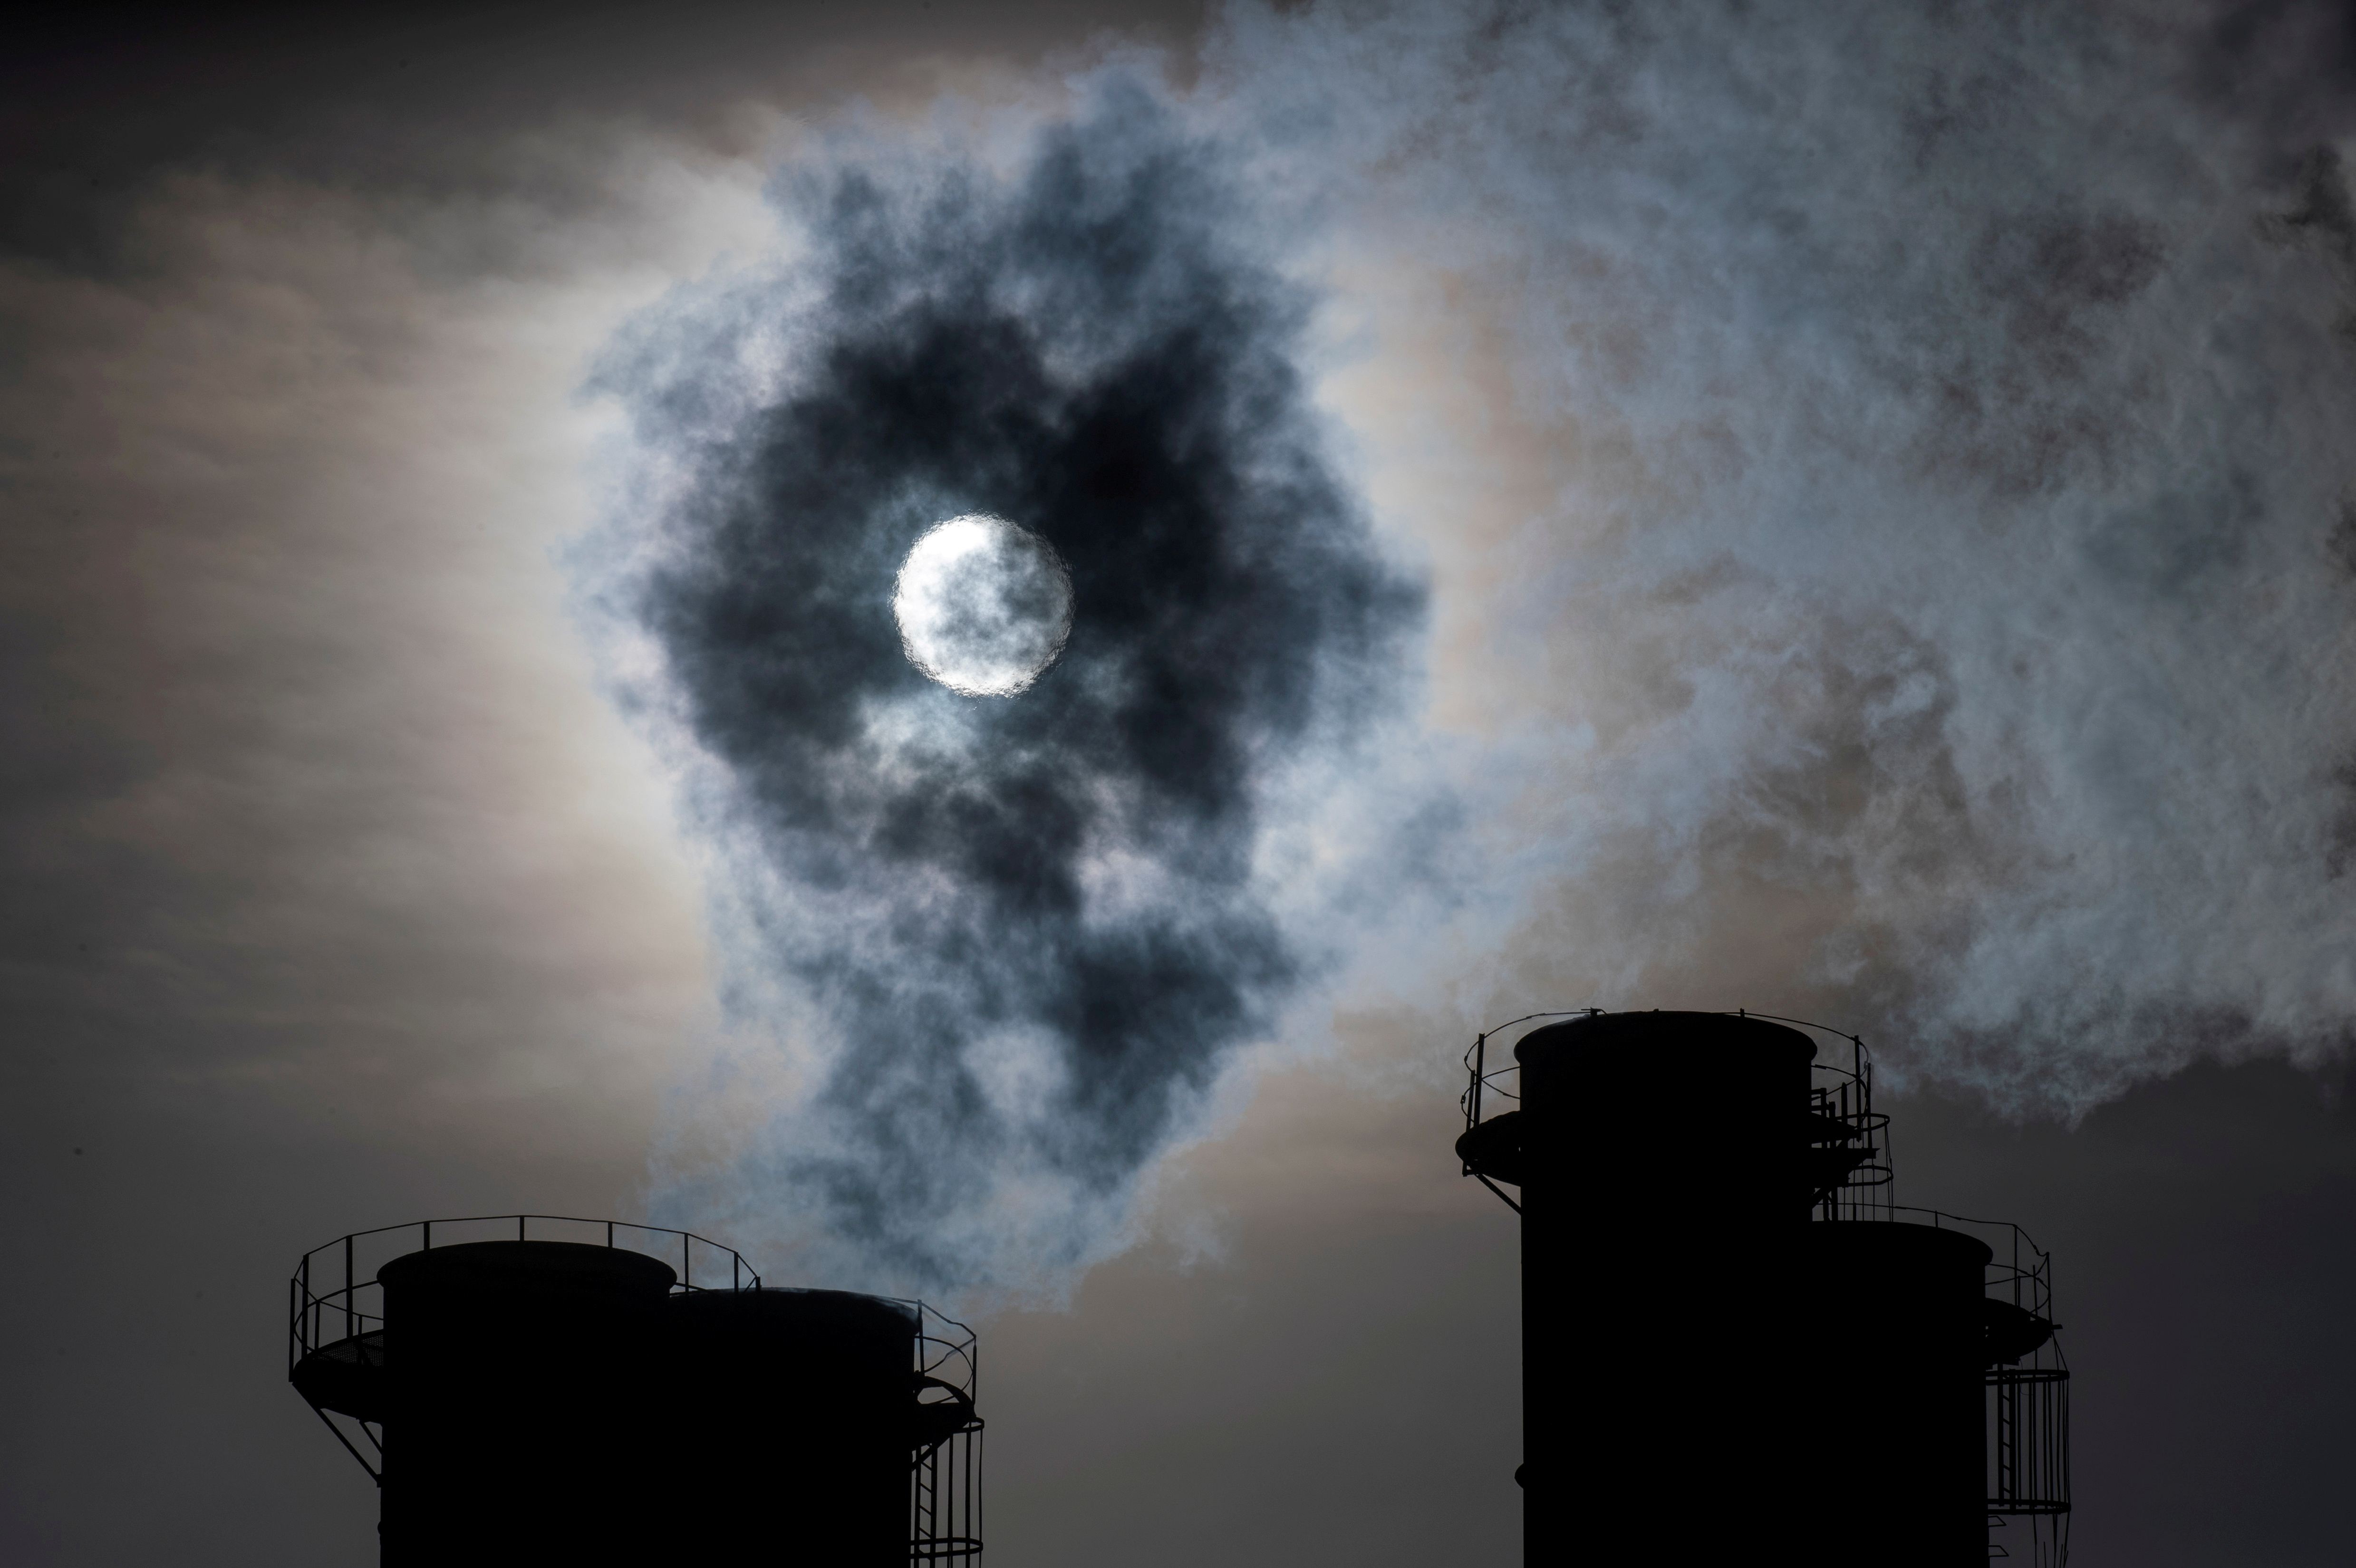 Sun shines through steam rising from chimneys of a power plant in Moscow, Russia November 13, 2019. REUTERS/Maxim Shemetov/File Photo